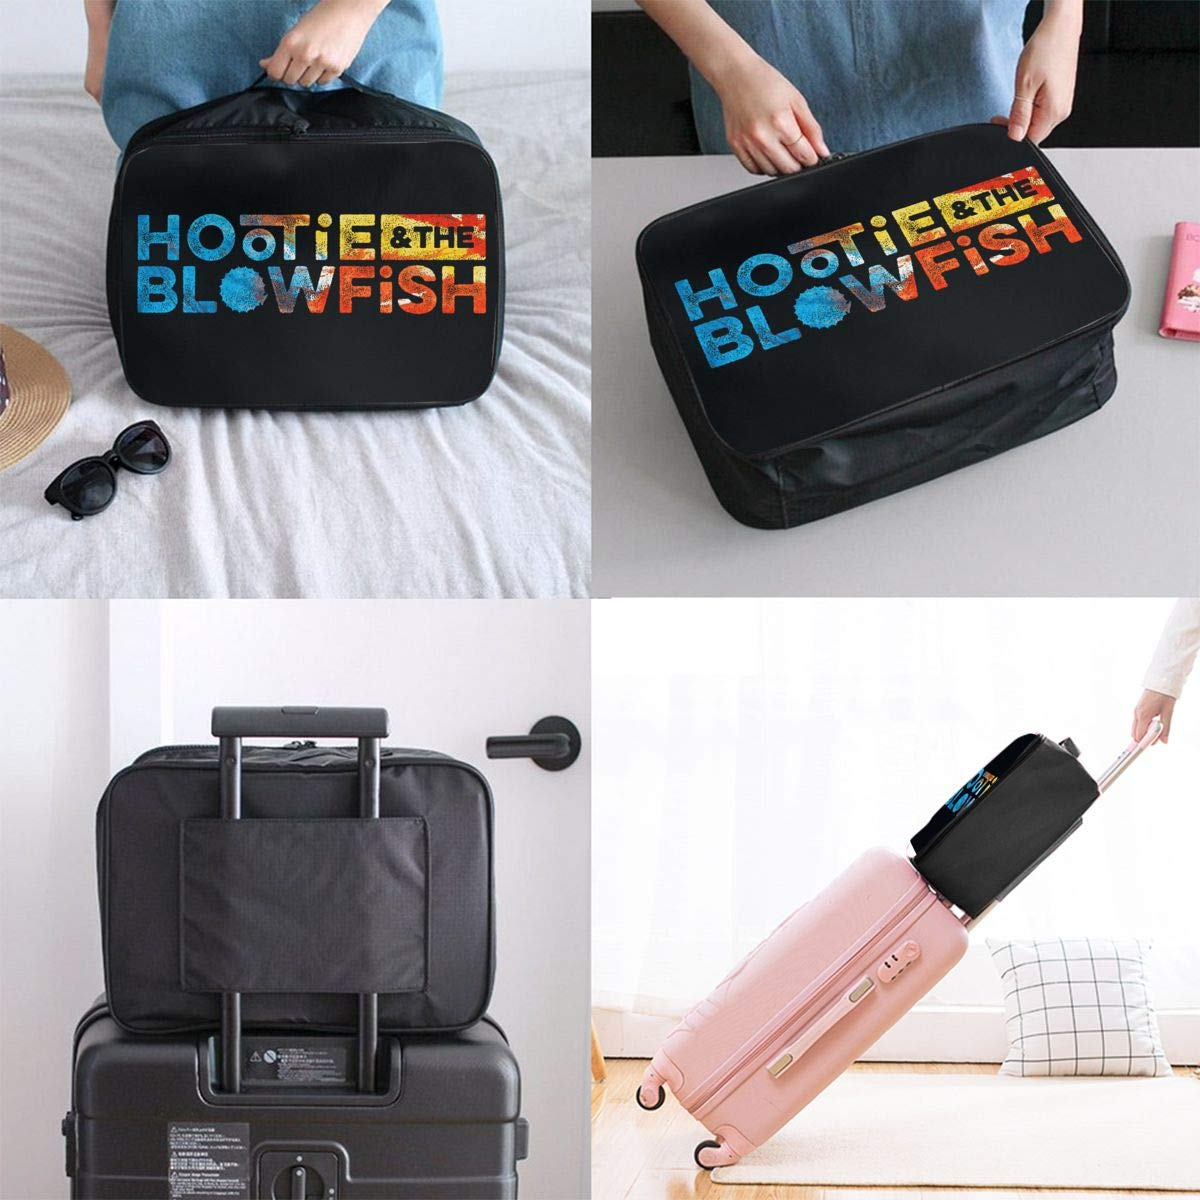 Travel Luggage Storage Bag,Packing Cubes Travel Duffel Bag Handle Makeup Bag Large Capacity Portable Luggage Bag Mdaw232nda